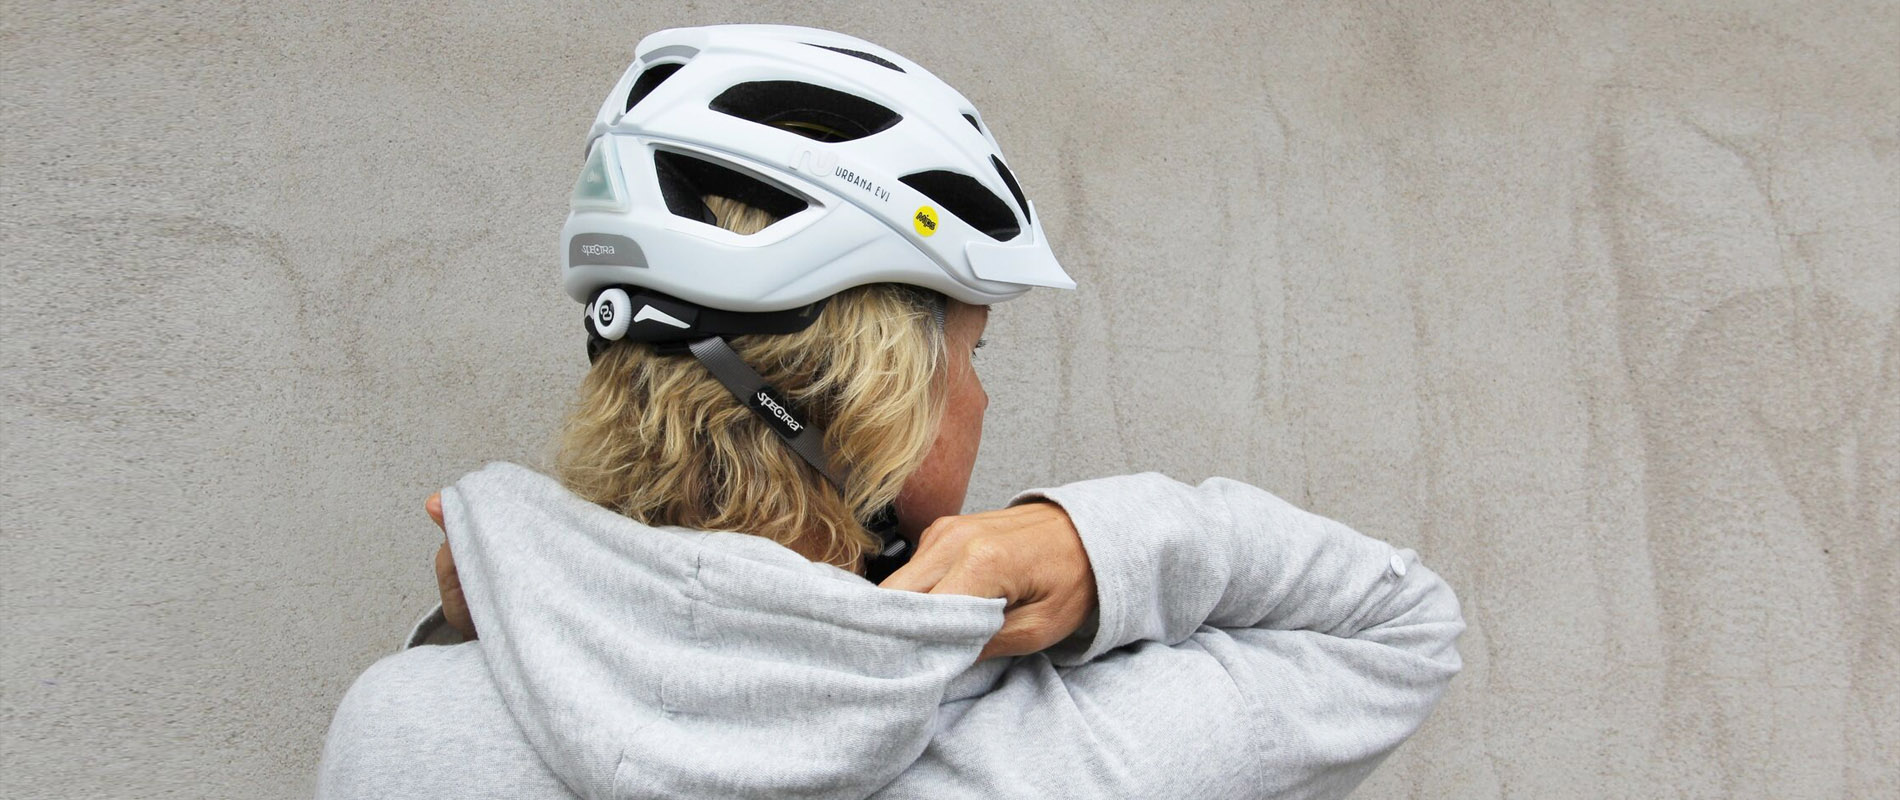 Commute rider with white spectra helmet